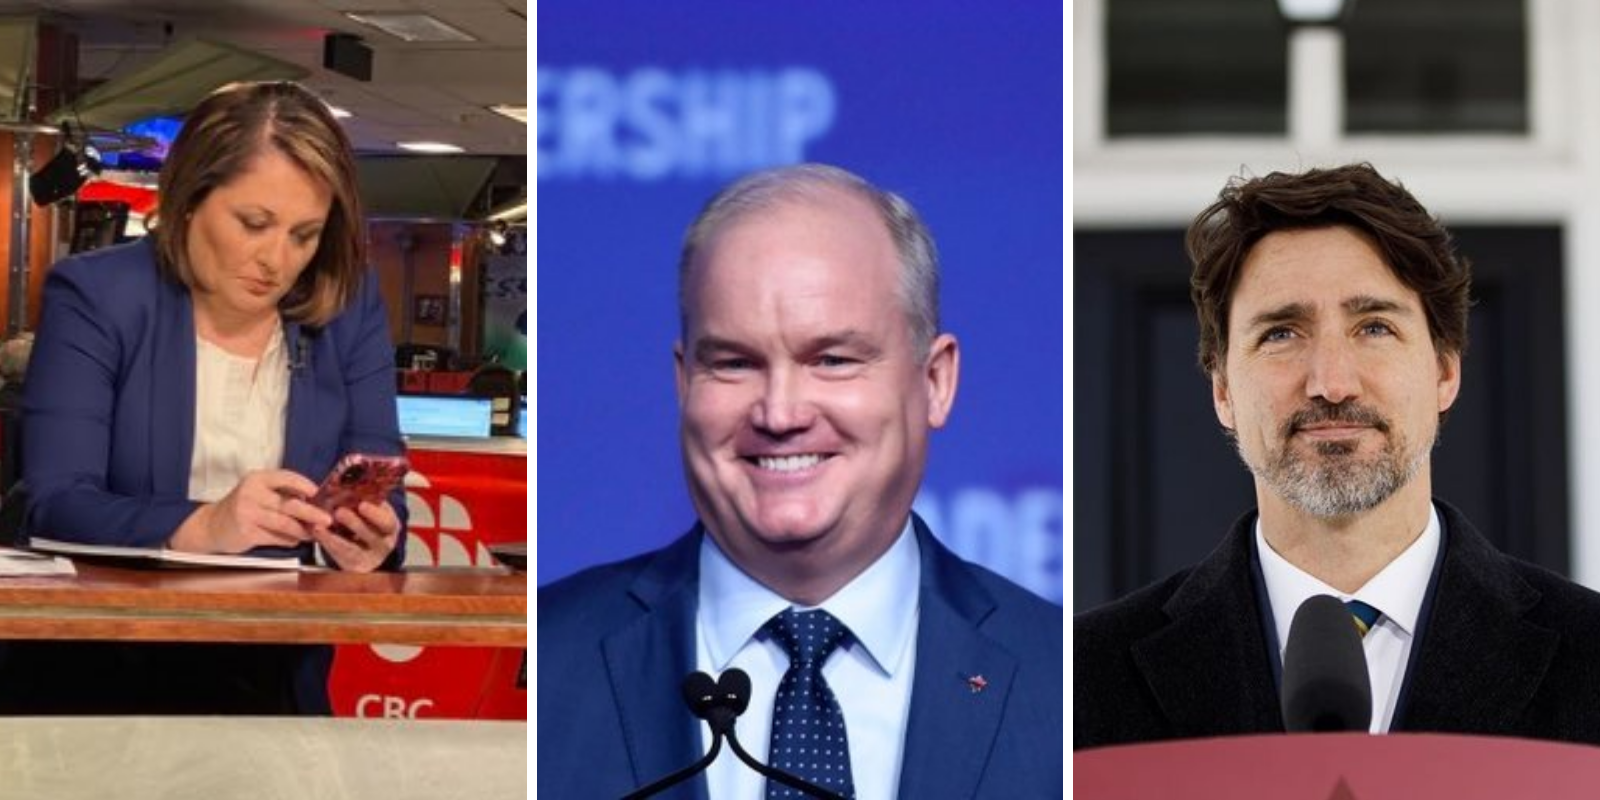 CBC has a real conflict of interest in covering Erin O'Toole—will they do Trudeau's bidding again?